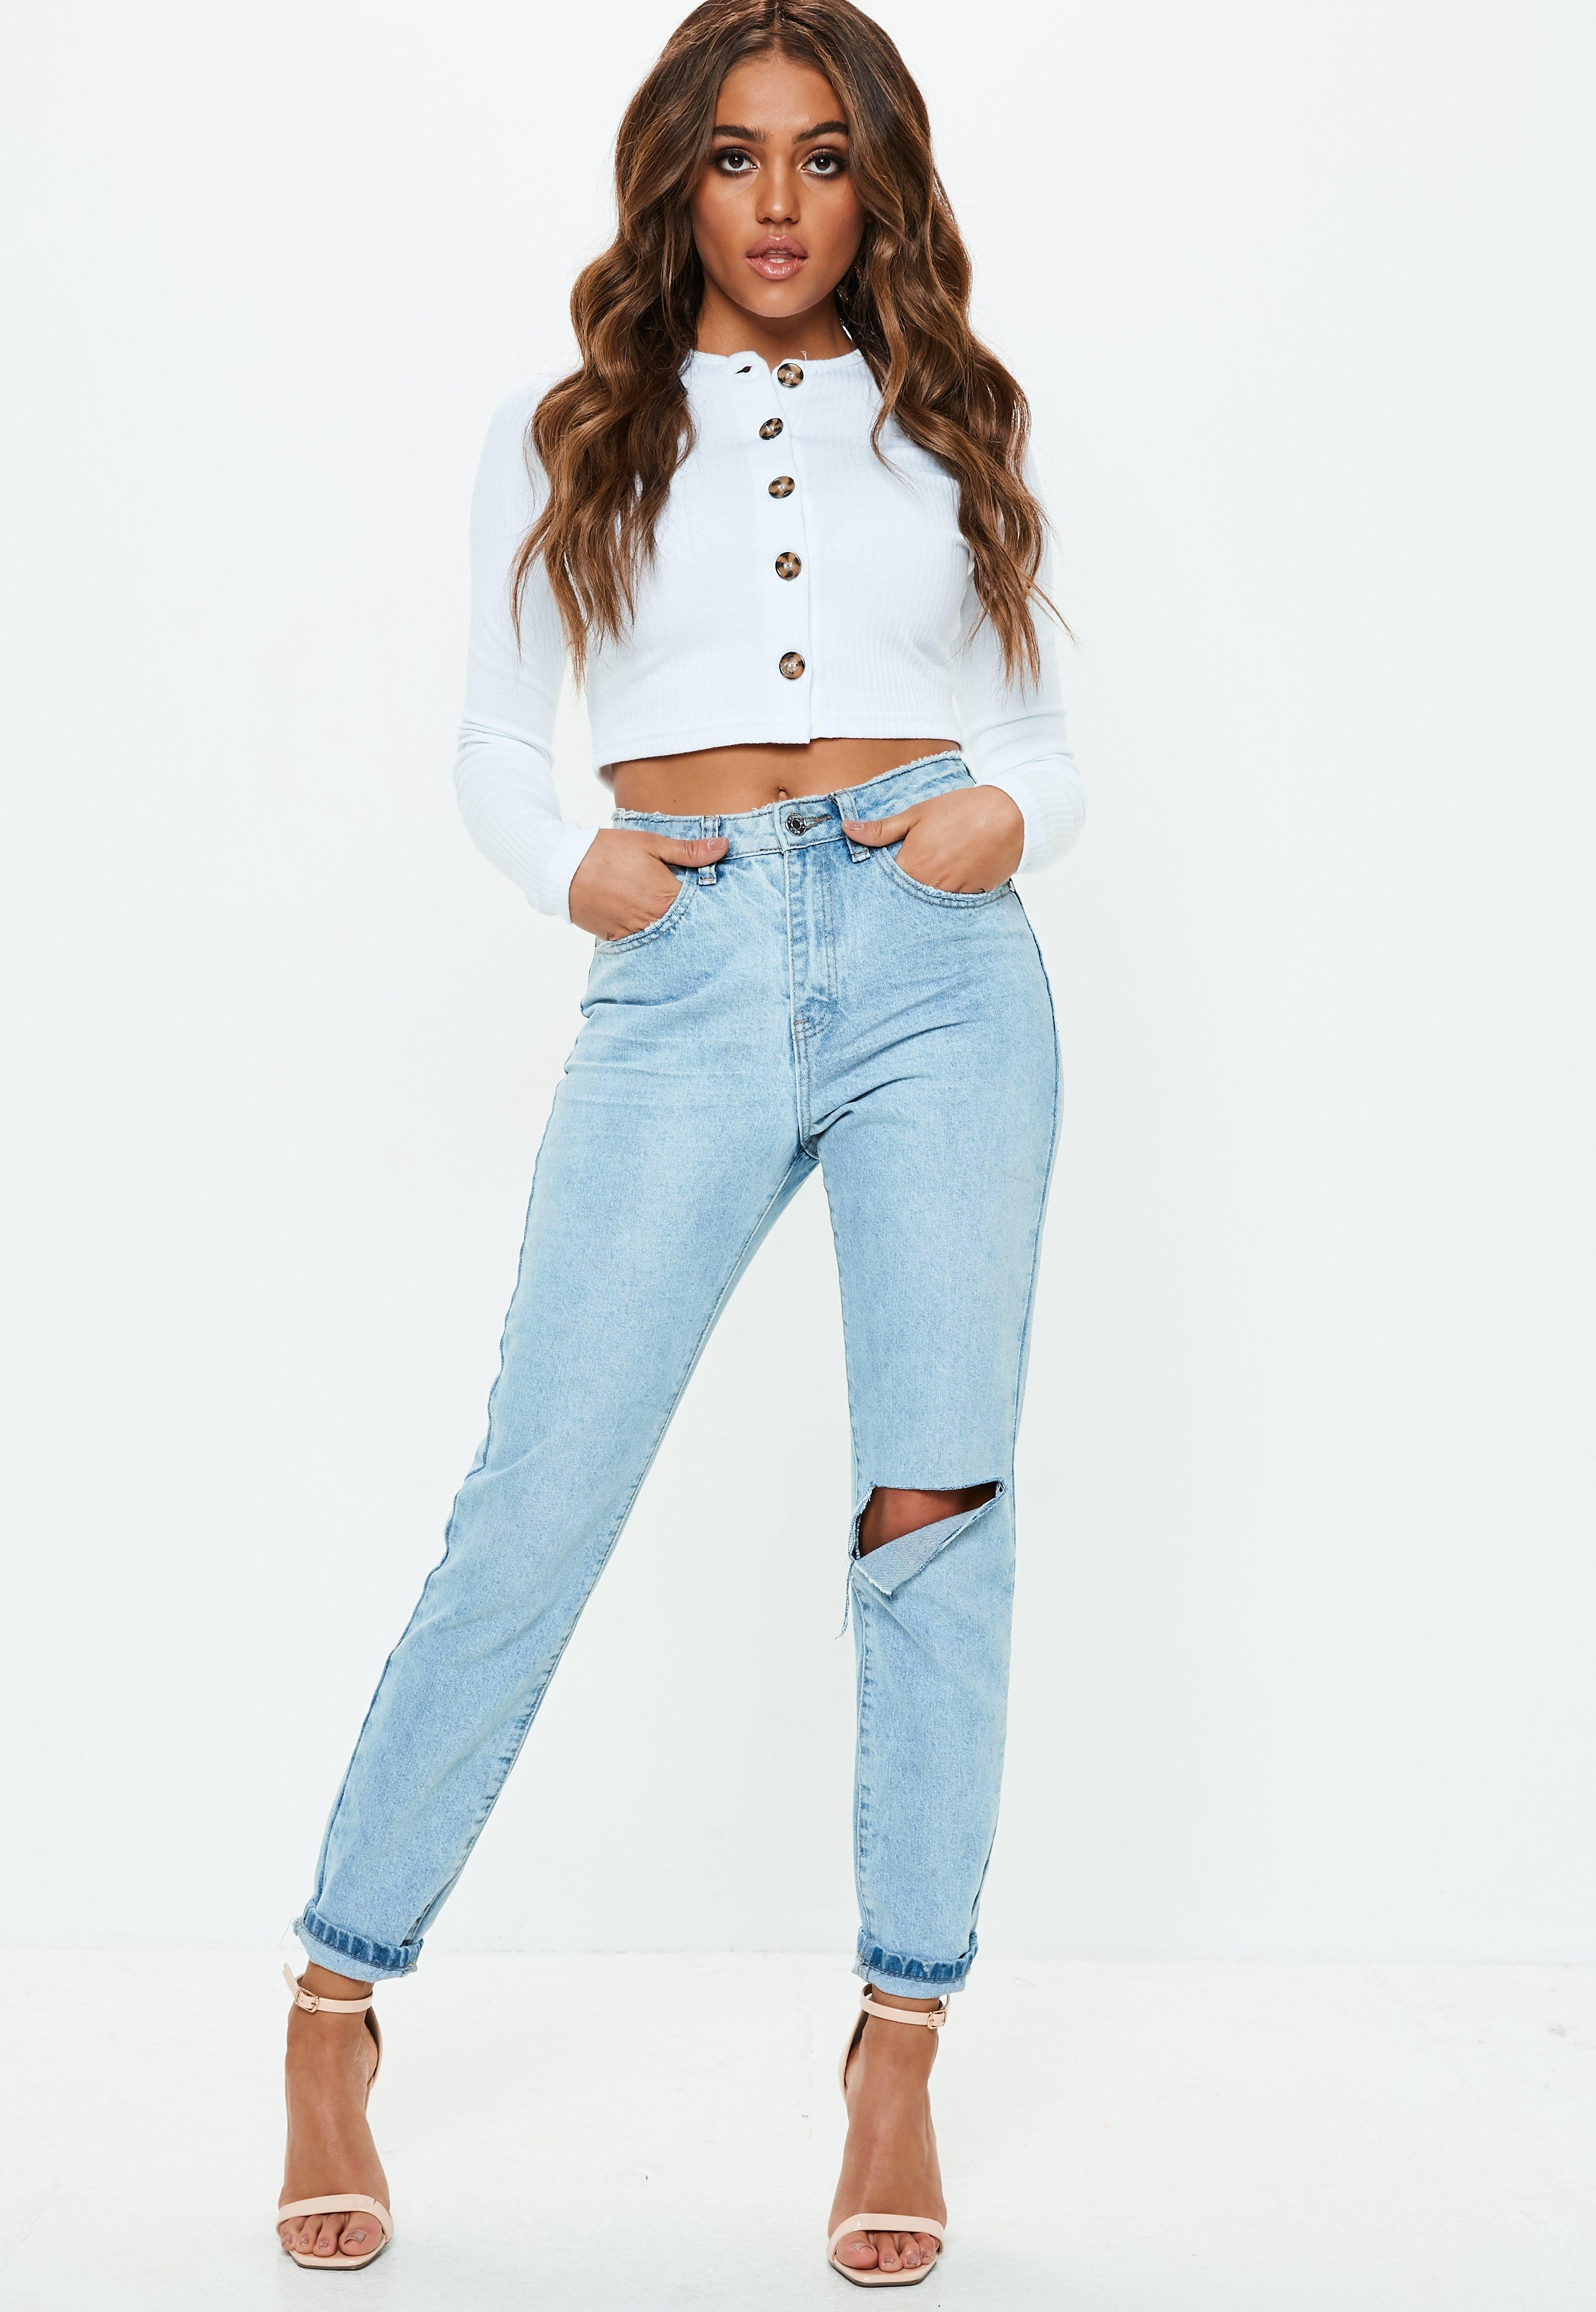 1f5e87f1b07e4 Lyst - Missguided White Horn Button Long Sleeve Crop Top in White